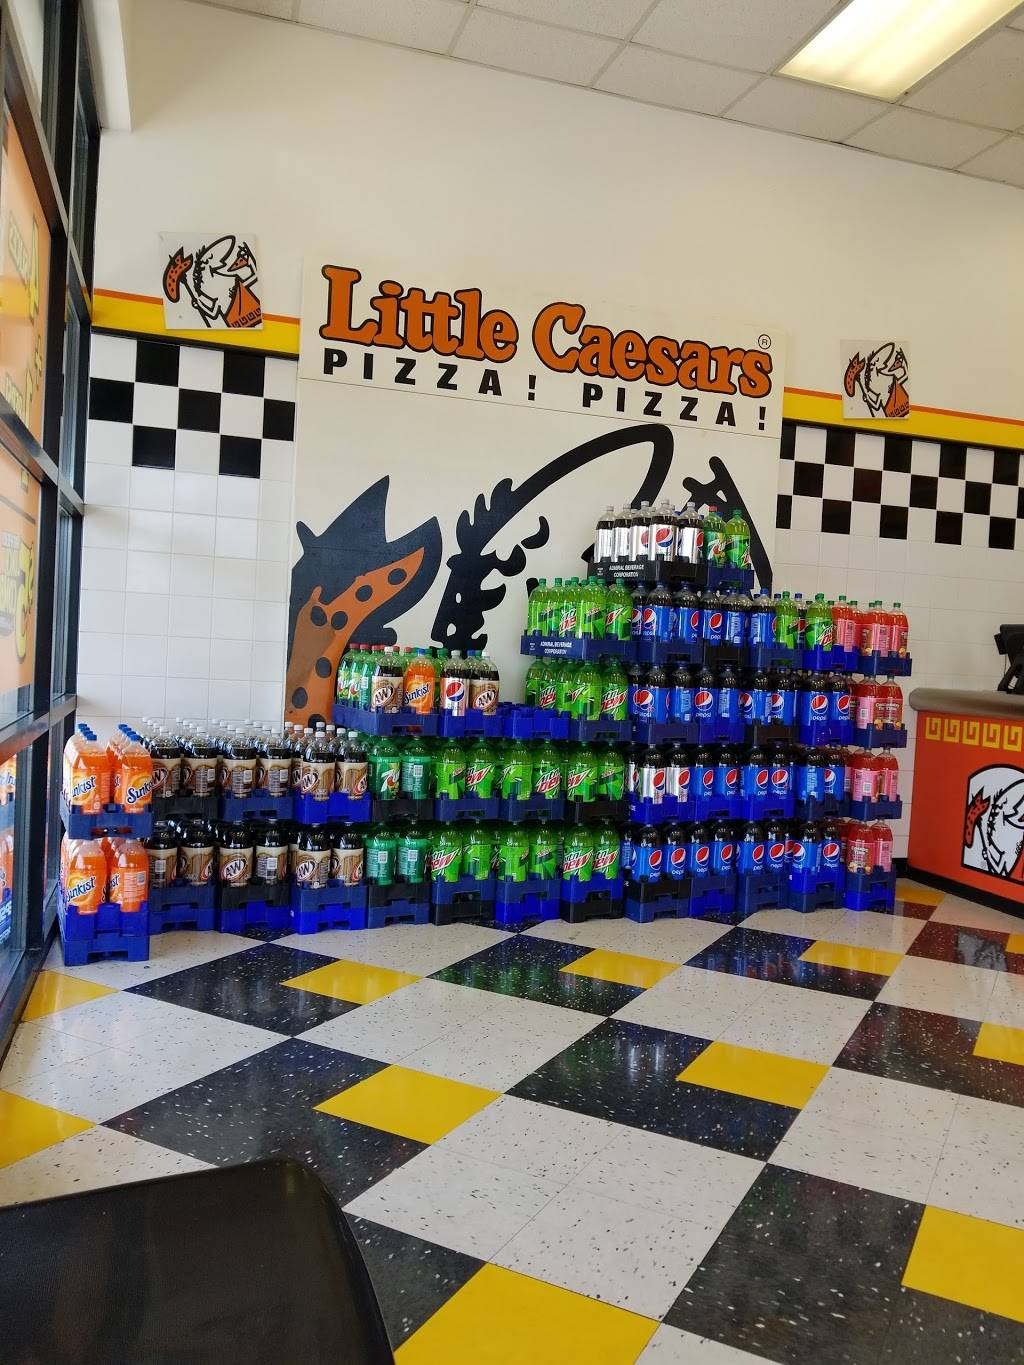 Little Caesars Pizza | meal delivery | 1933 N 2000 W SPACE H, Clinton, UT 84015, USA | 8018252433 OR +1 801-825-2433